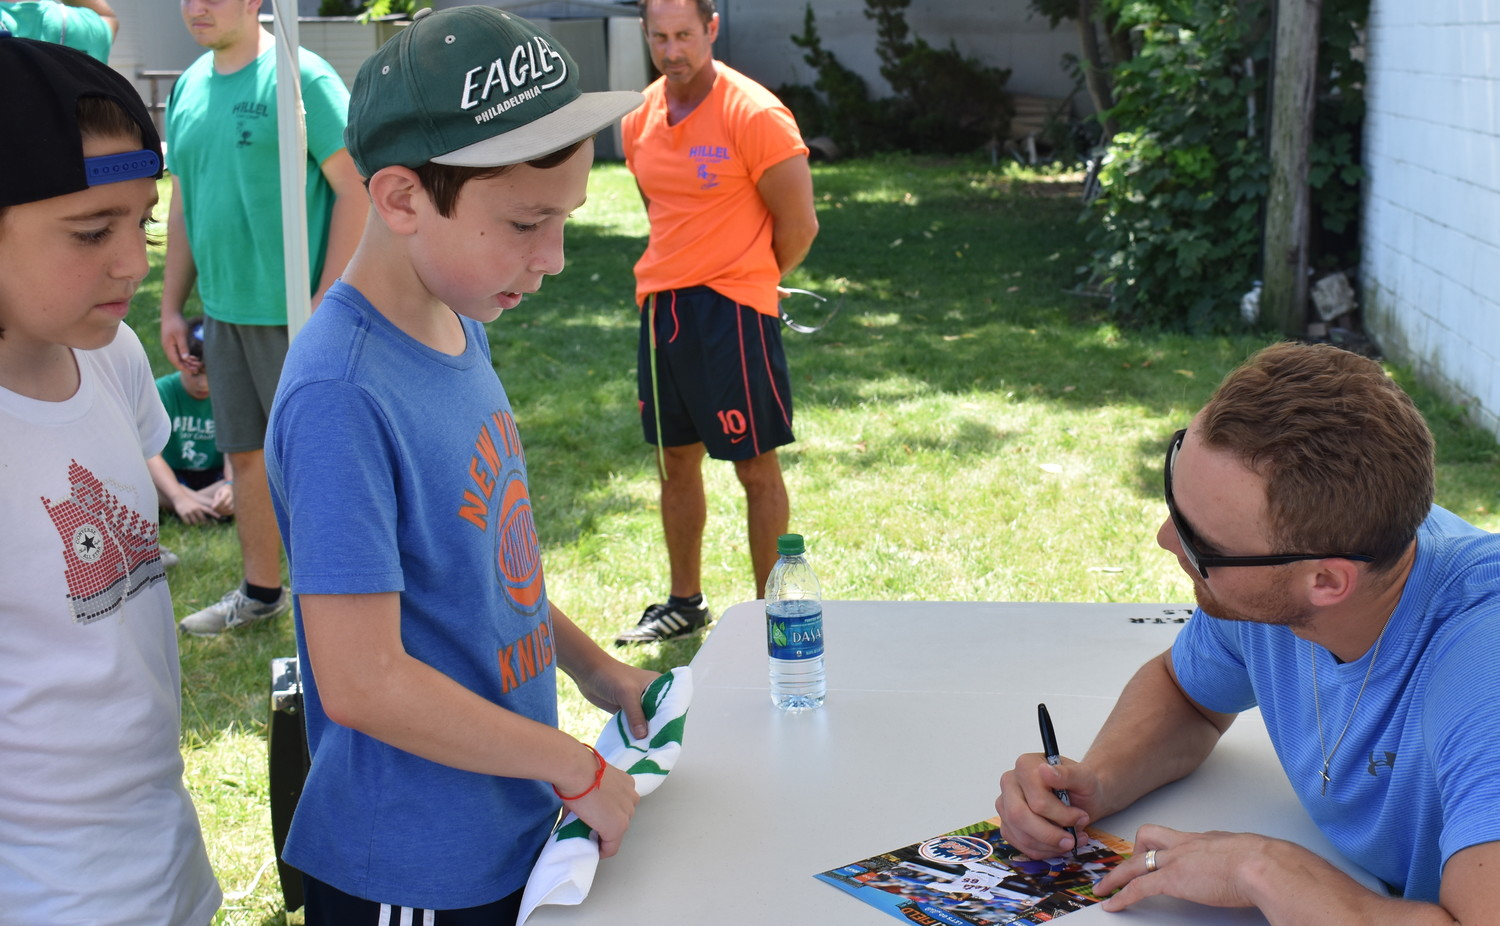 Isaac Radzik, 11, may be wearing Eagles and Knicks gear, but he couldn't wait to get Nimmo's autograph at Hillel Day Camp in Lawrence.